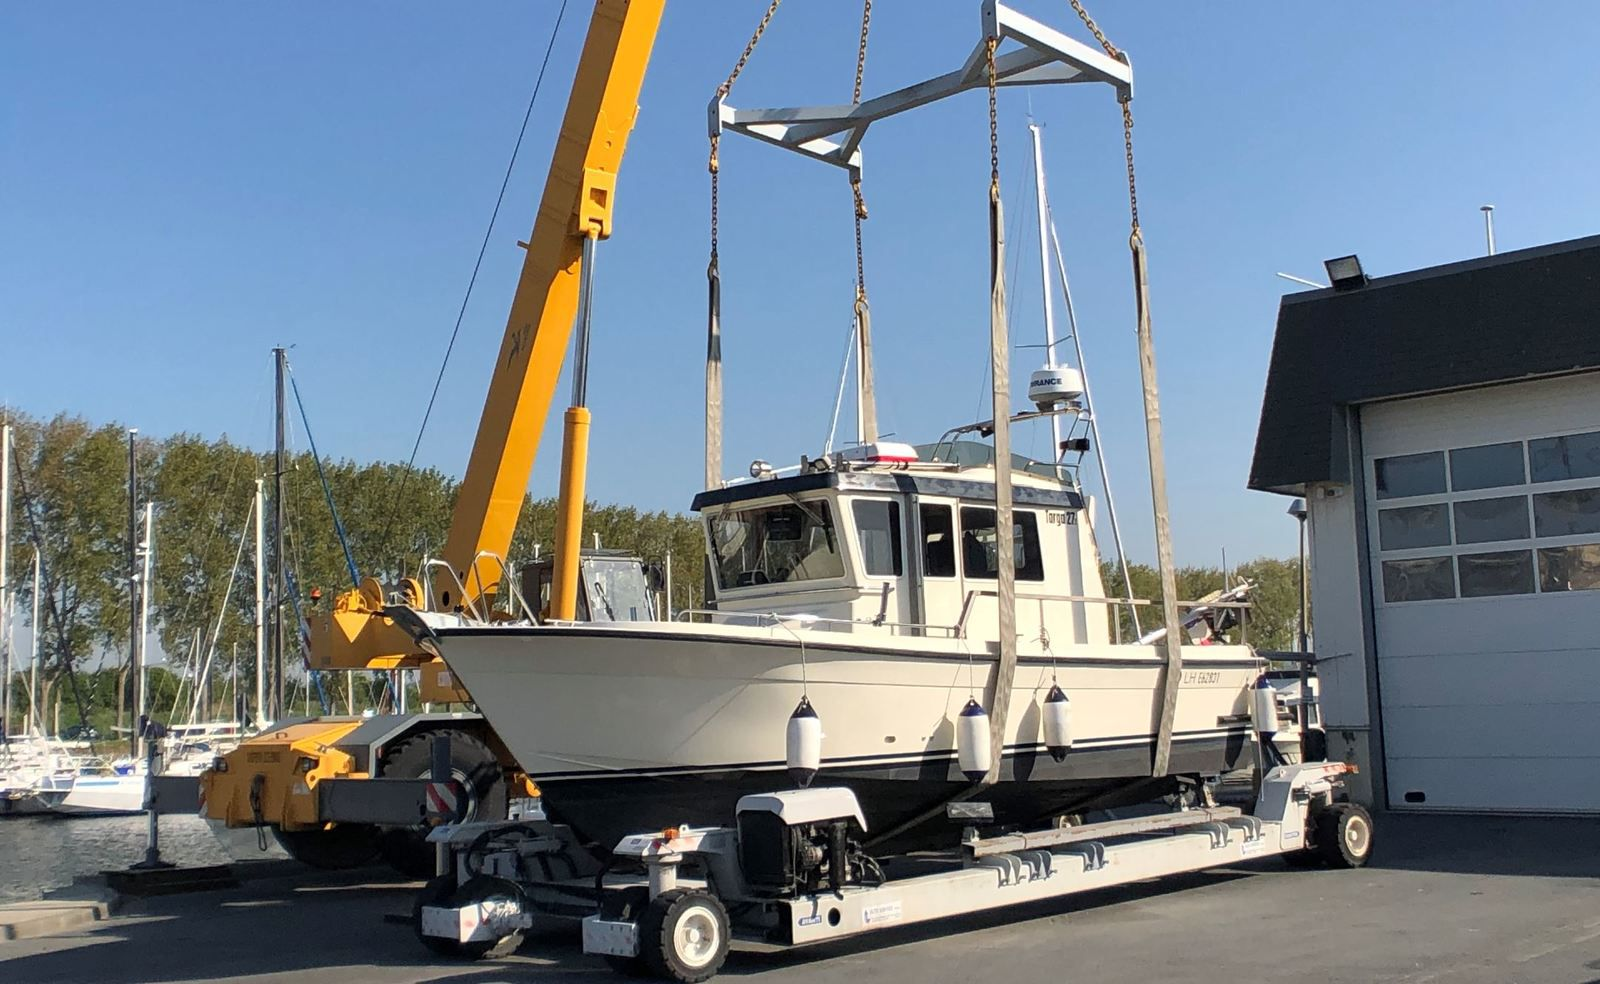 Launching of a Targa at its French importer, Snip Yachting, in Ouistreham